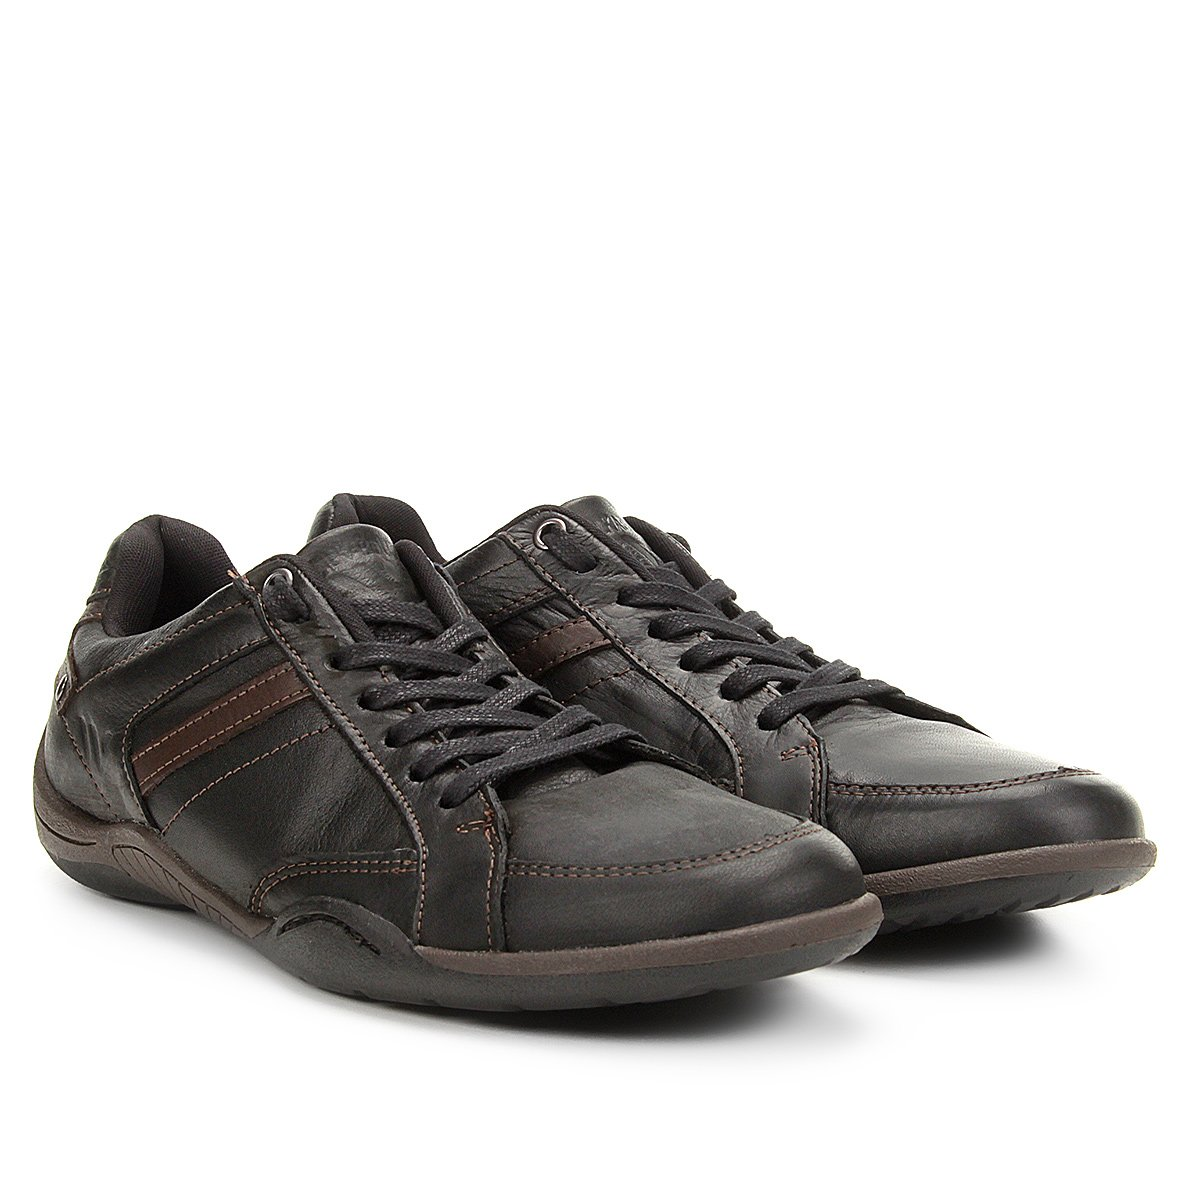 8c0679cd00 Sapatênis Couro Walkabout New Masculino